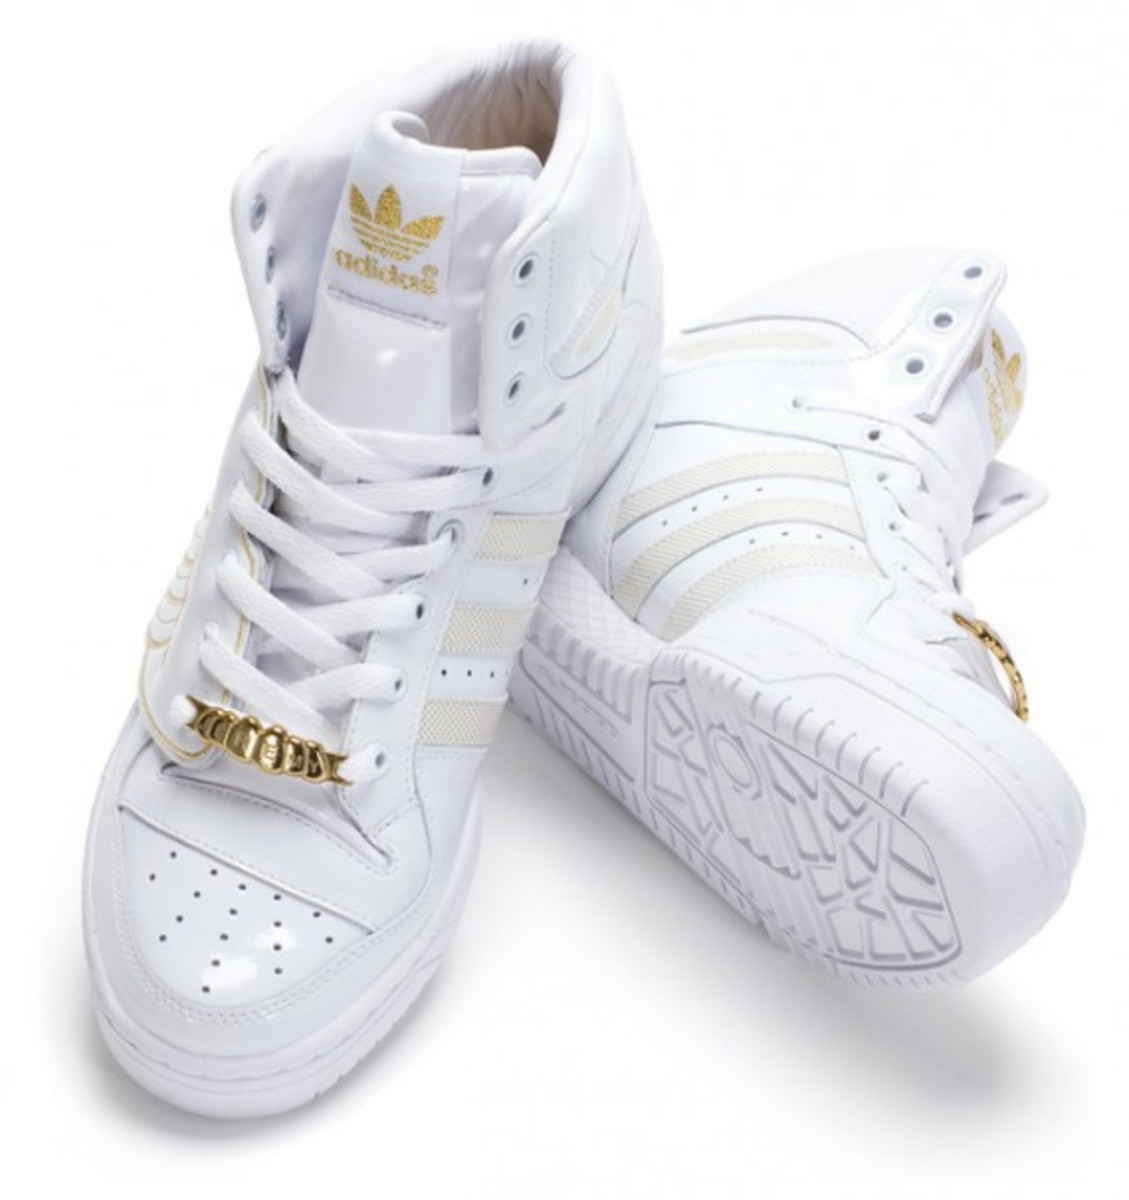 jeremy_scott_adidas_originals_obyo_ss10_footwear_5